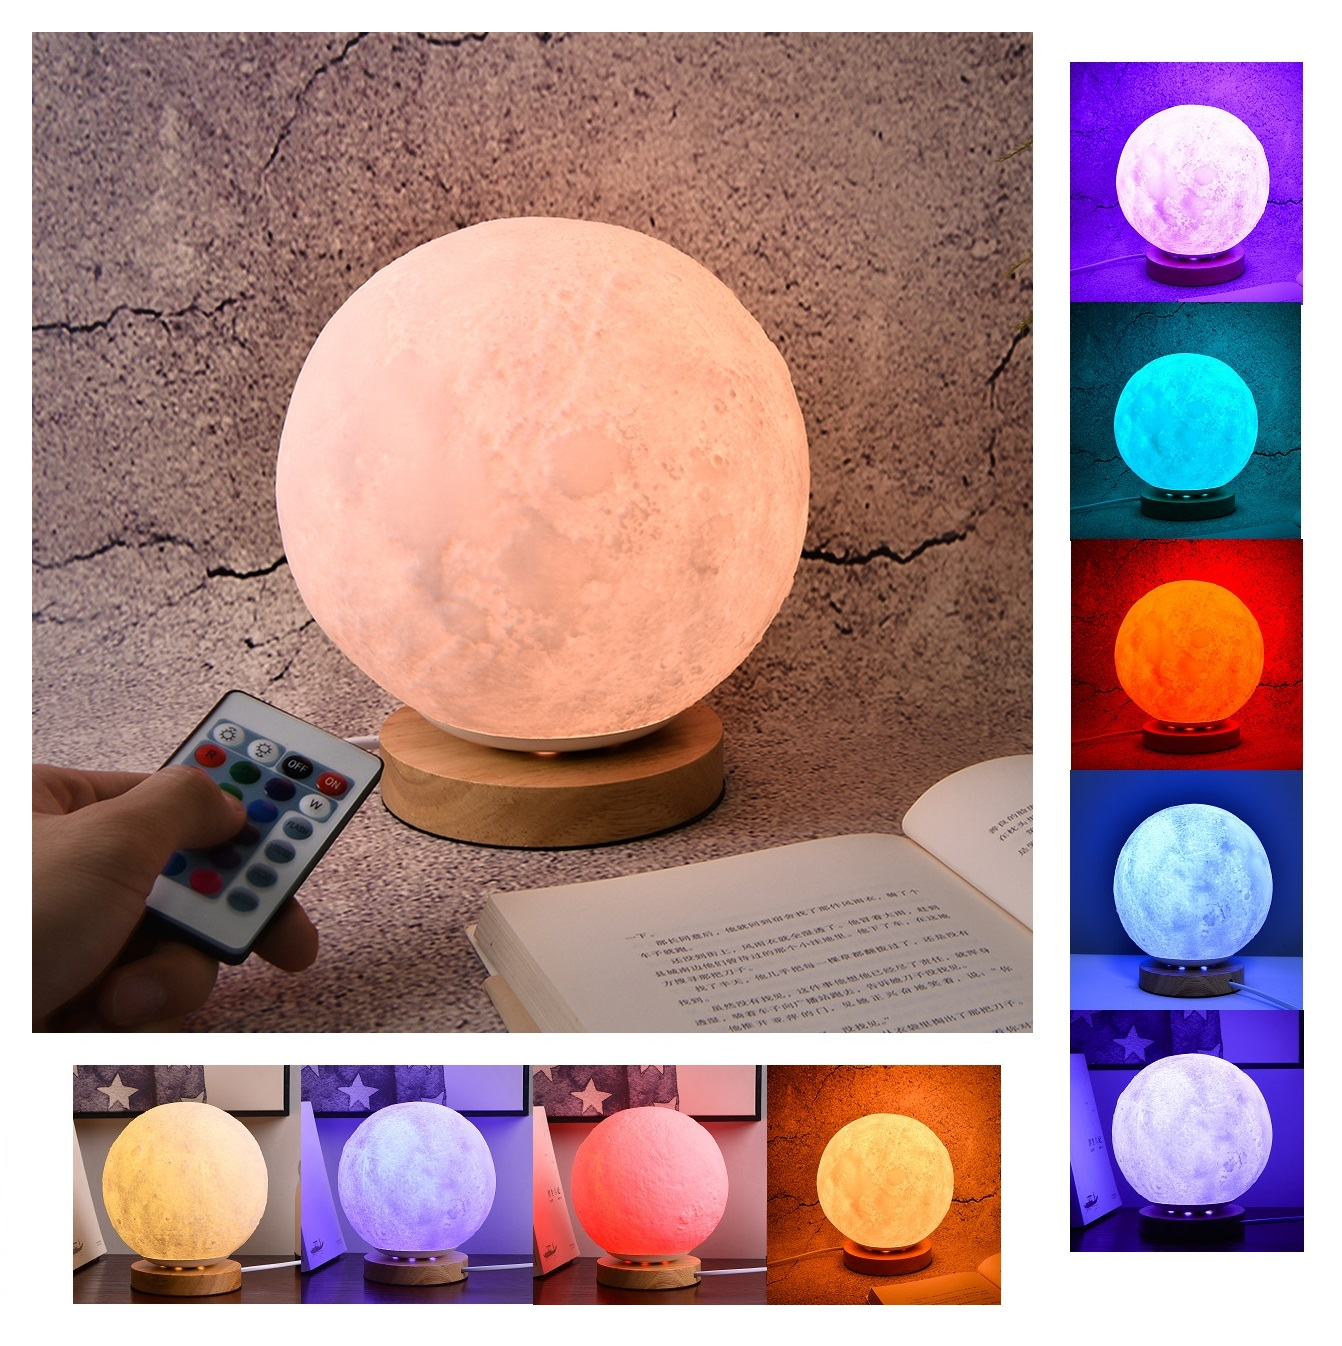 Rechargeable 3D Print Moon Lamp 7 Colors Change Remote Control Touch Switch Bedroom Night Light for Home Decor Creative Gift magnetic floating levitation 3d print moon lamp led night light 2 color auto change moon light home decor creative birthday gift